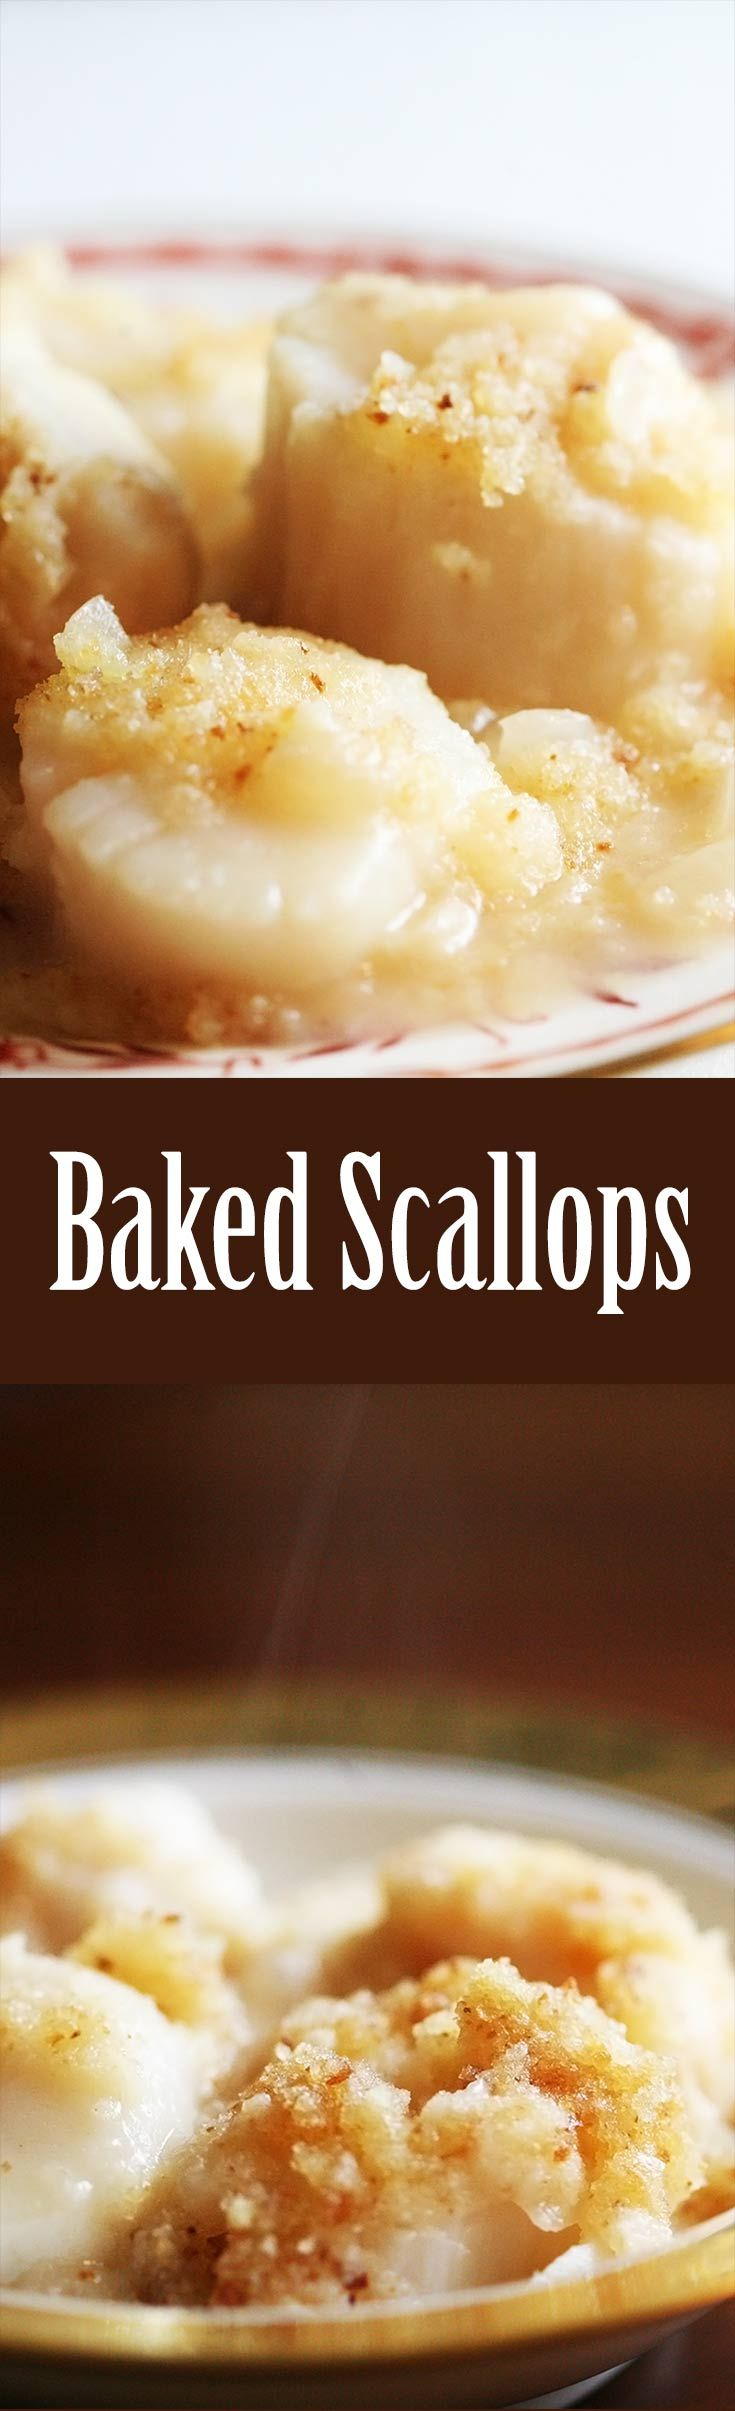 Baked Scallops ~ Easy baked scallops recipe. Scallops baked in a white ...